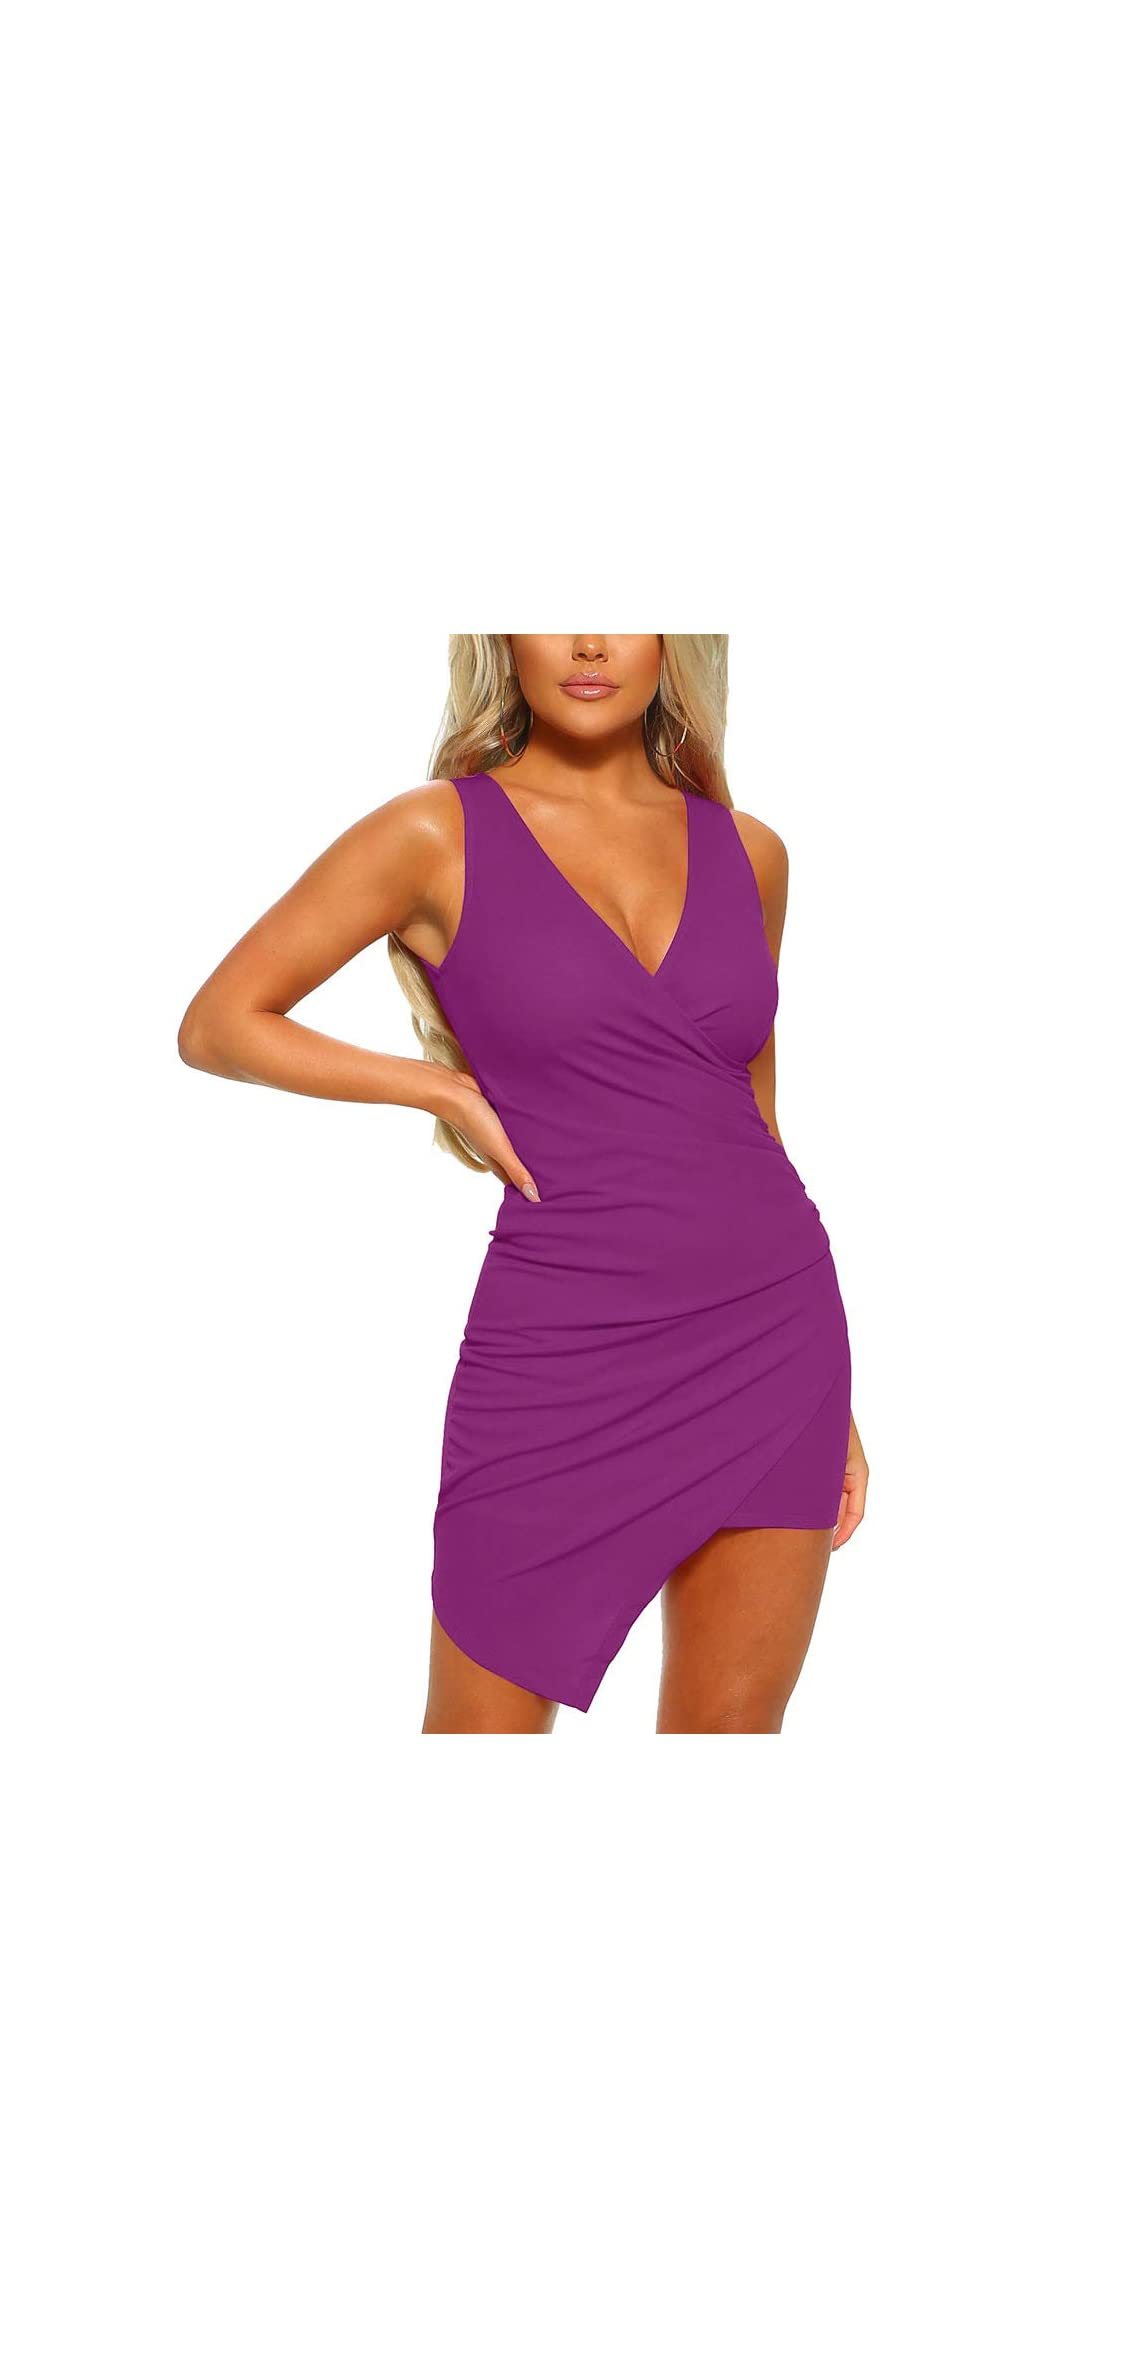 Women's Casual Sleeveless Ruched Cocktail Party Dresses